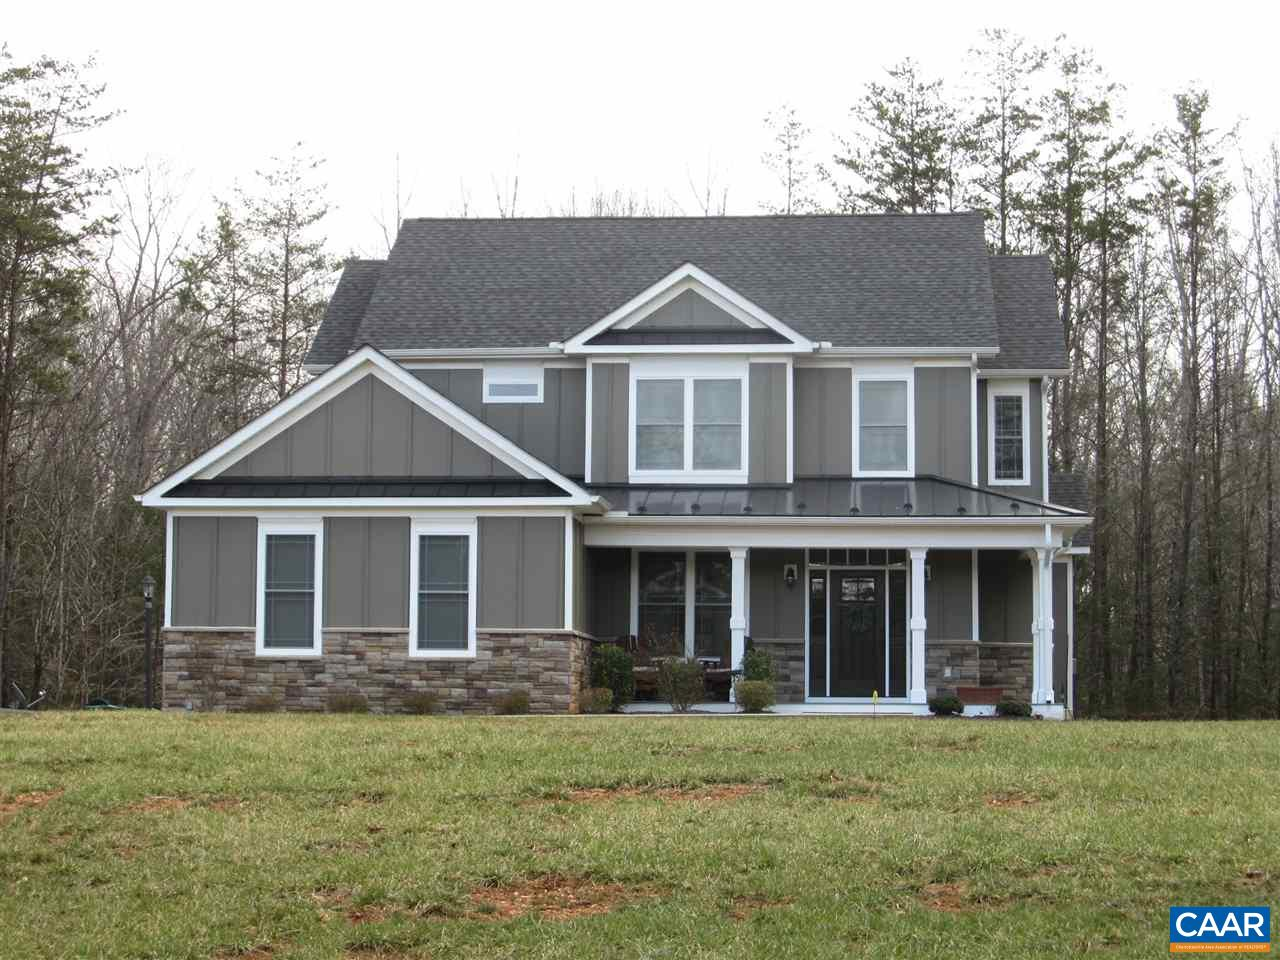 4 SCLATERS FORD RD, PALMYRA, VA 22963